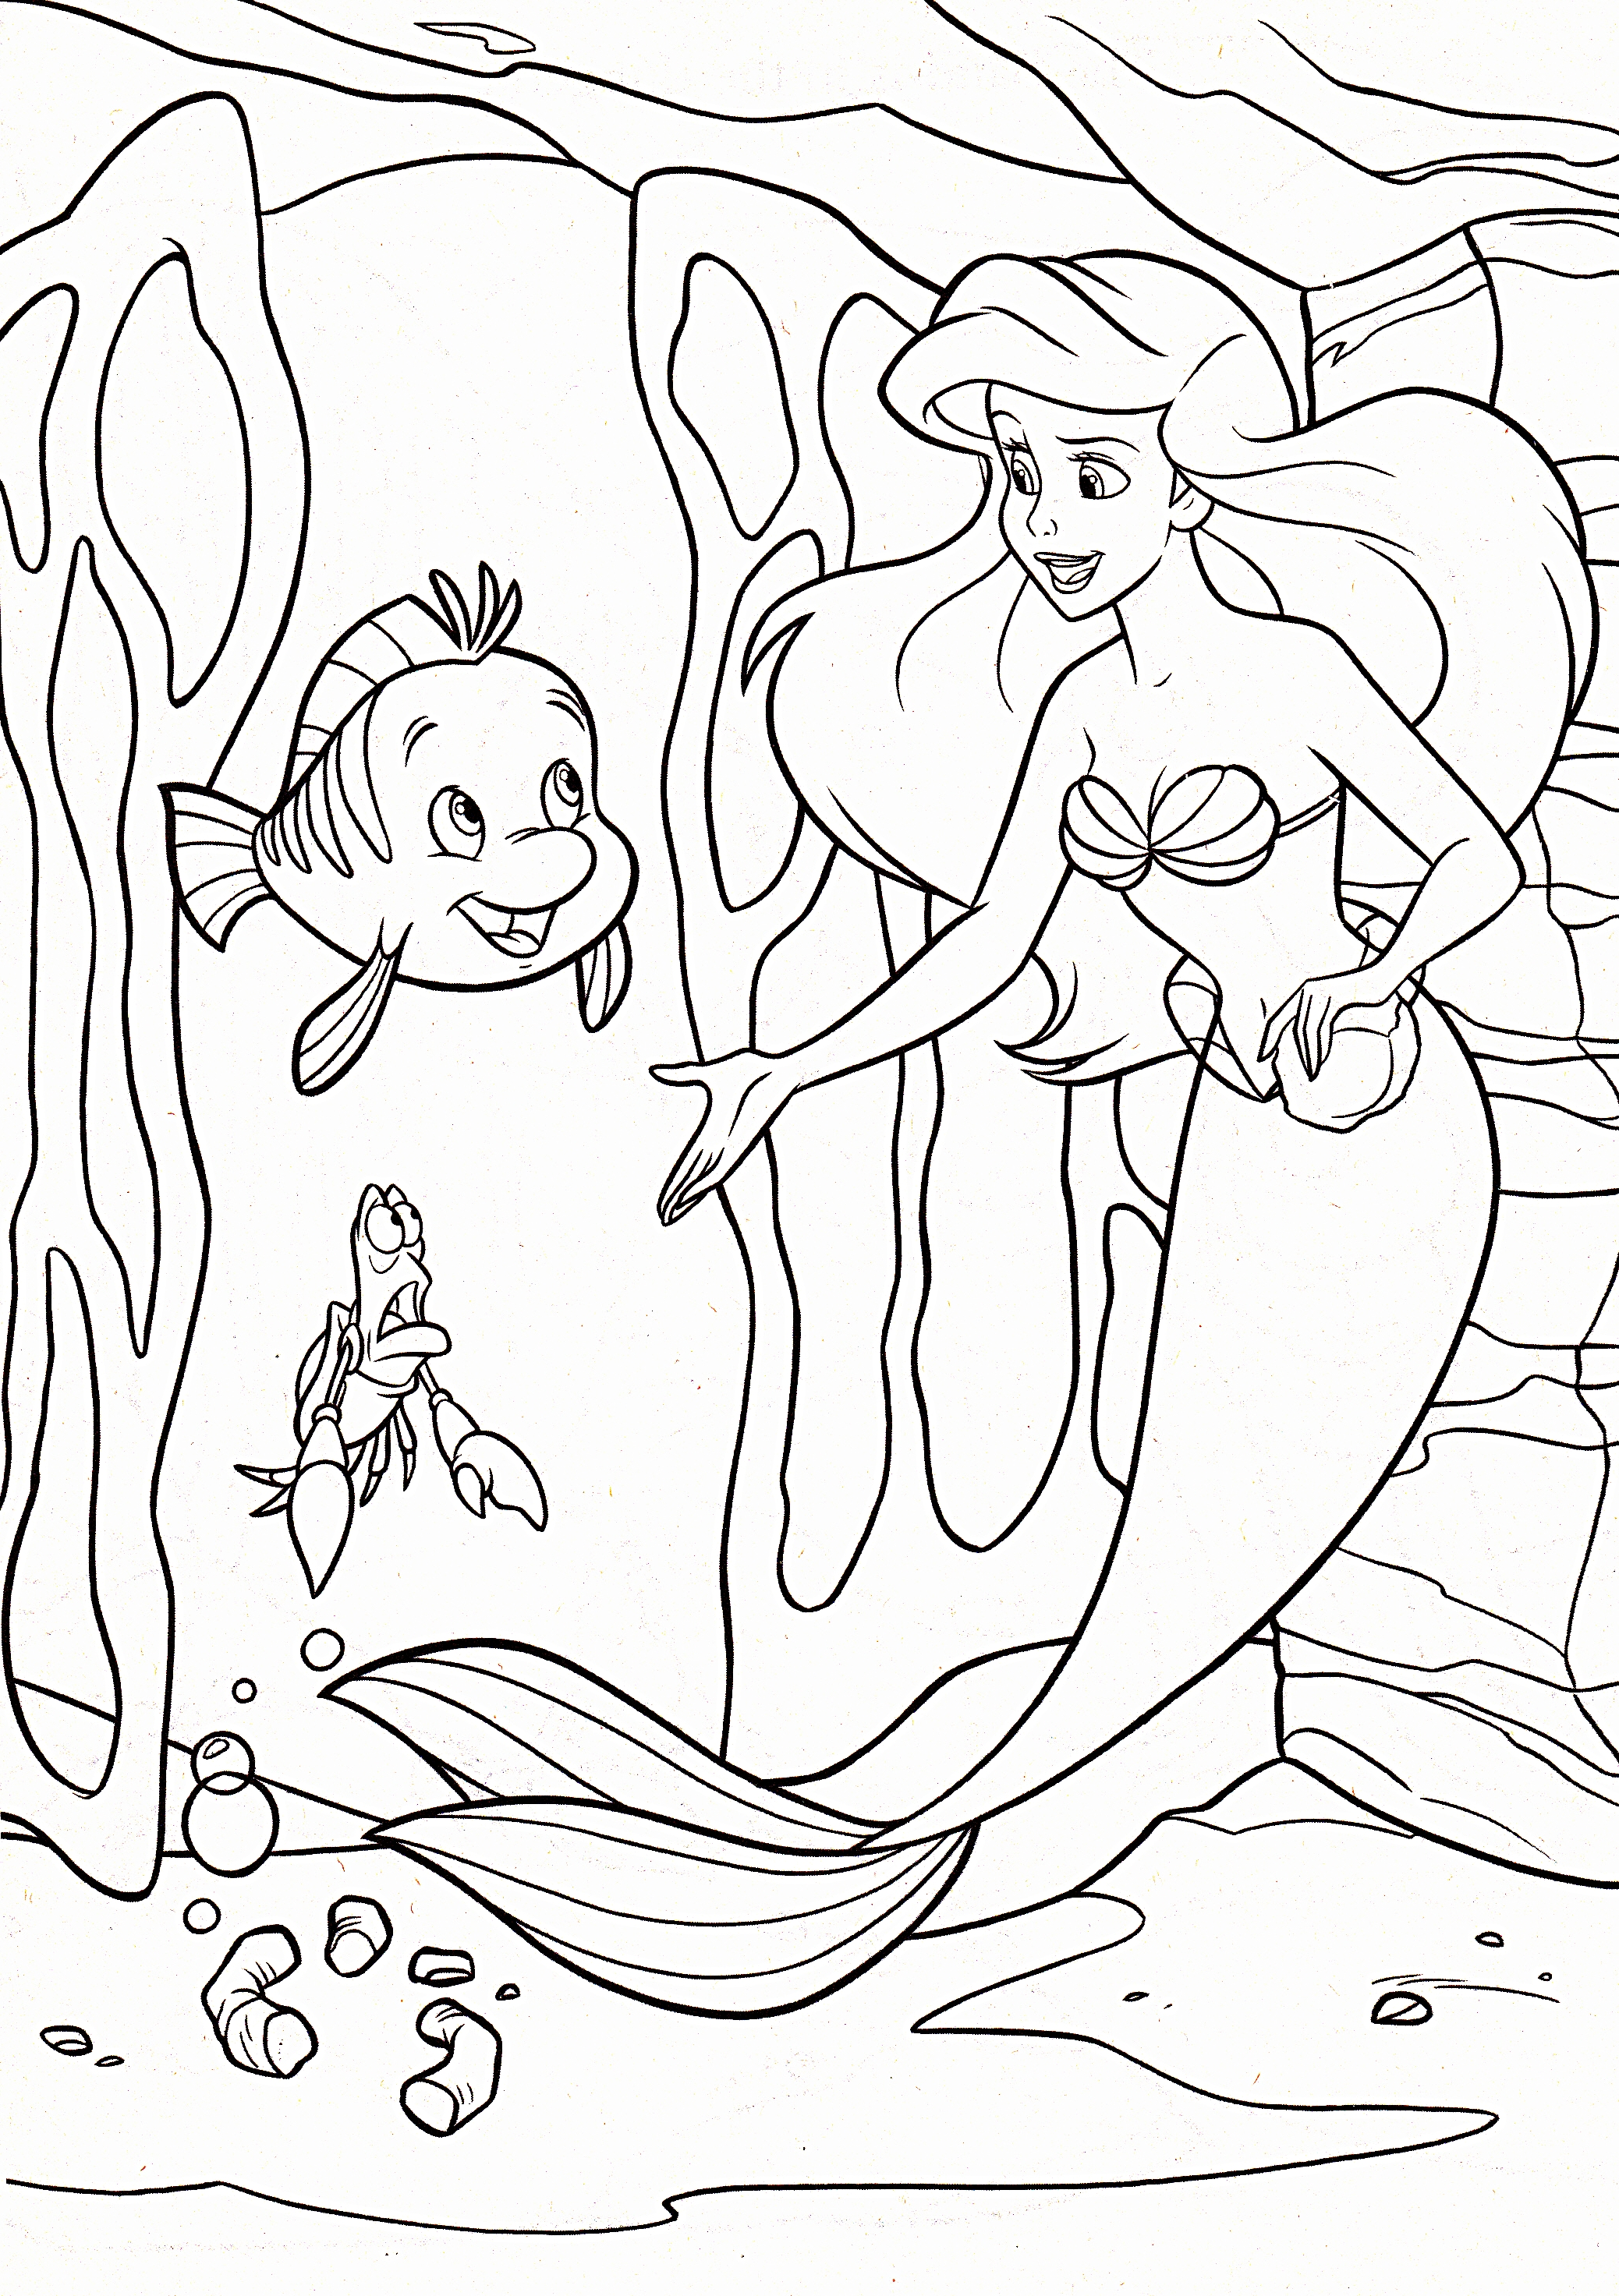 Princess Aerial - Free Colouring Pages